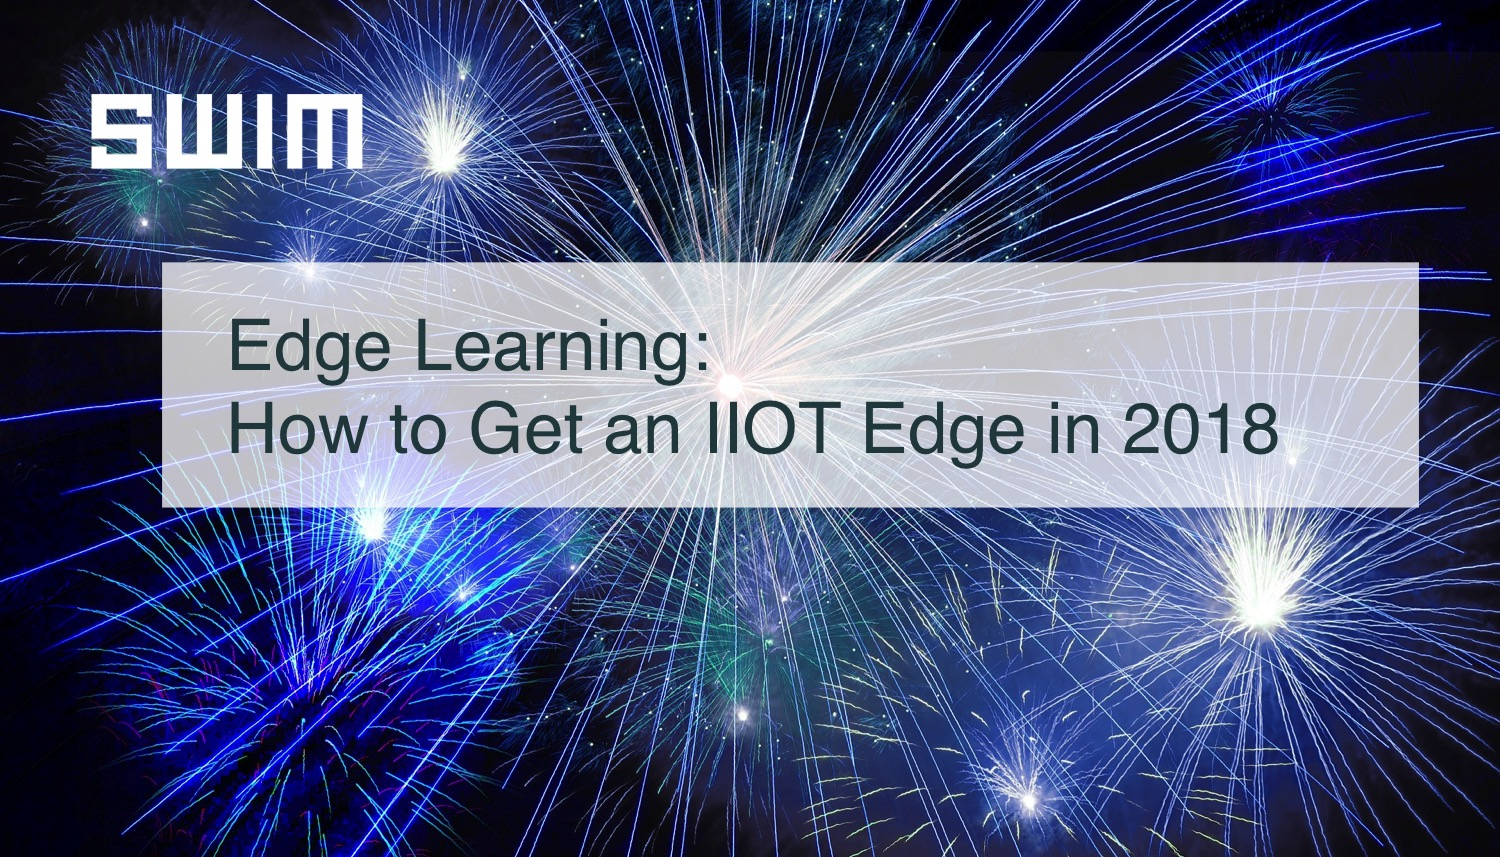 Edge Learning: How to Get an IIOT Edge in 2018 | Swim Inc.